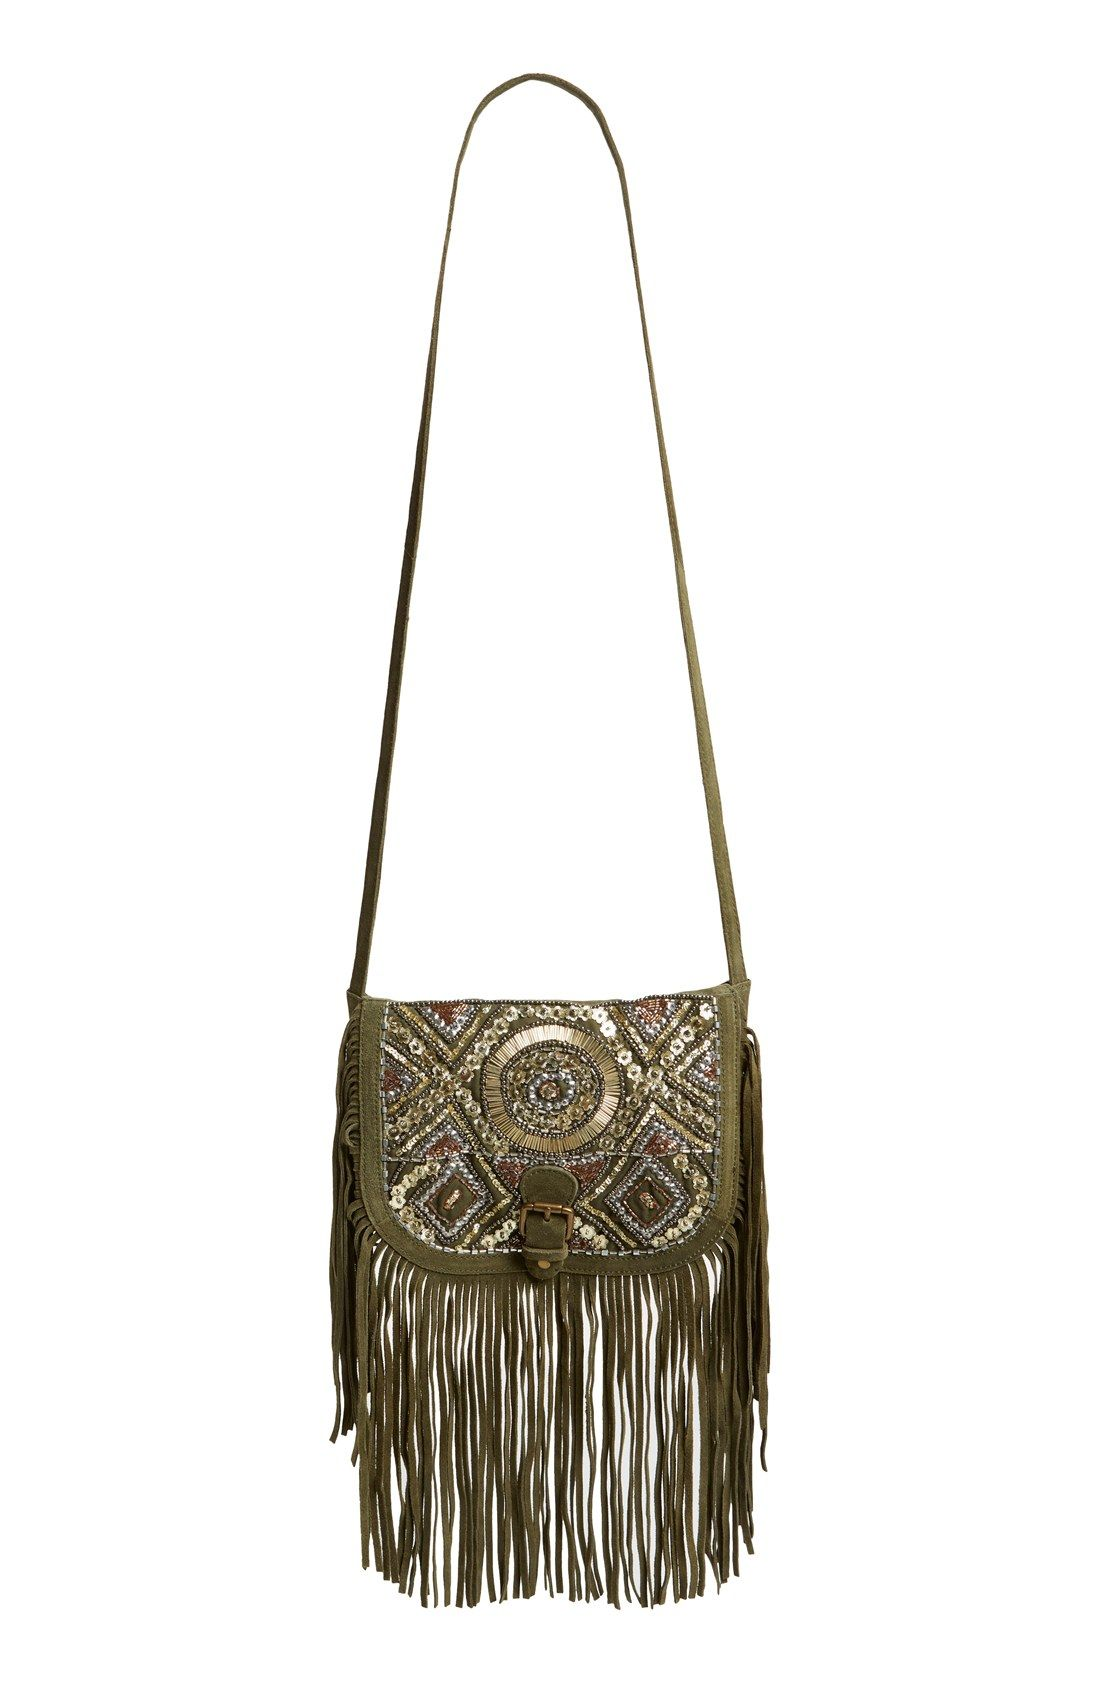 9ff280cadf4 Stunning beadwork and shimmery sequins highlight this boho-chic crossbody  bag. Also, love the long fringe that flows and calls attention to the  sparkly gold ...